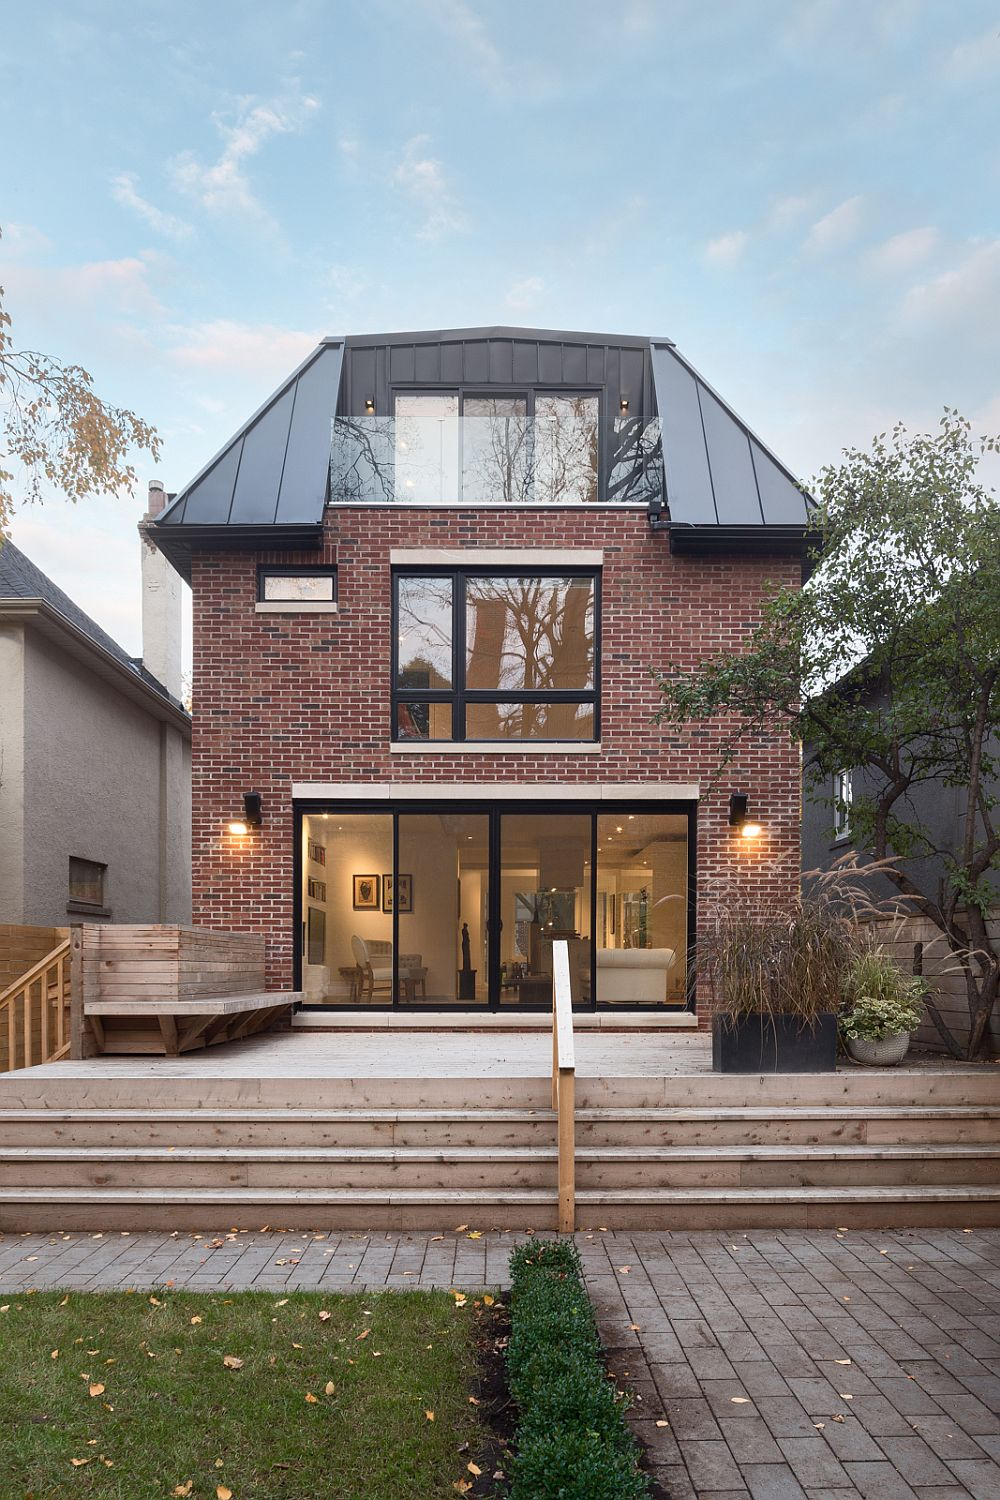 Brick, Bay Windows and roof form give the exterior a classic vibe